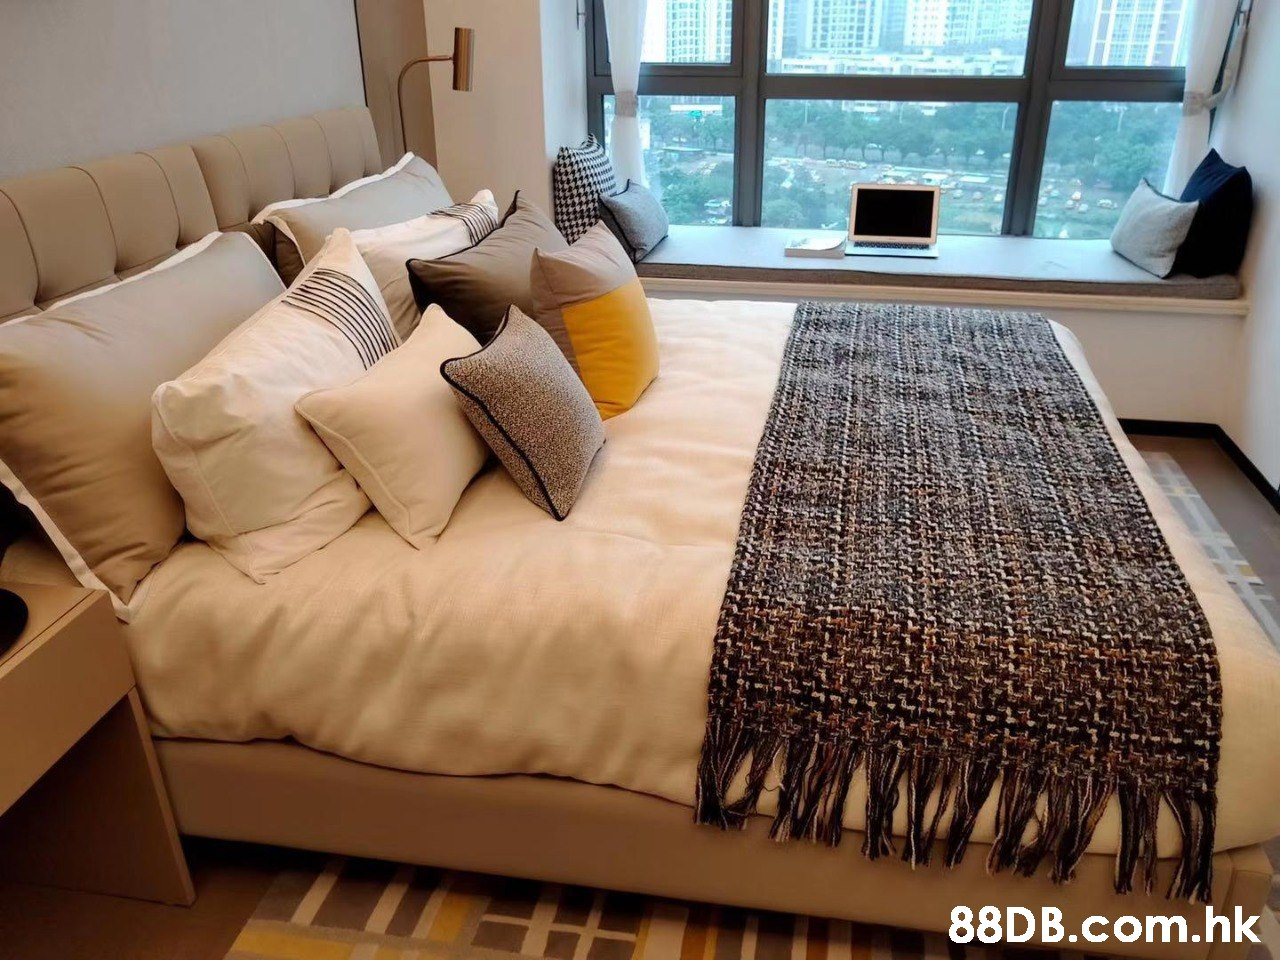 .hk  Bedroom,Room,Furniture,Bed,Property